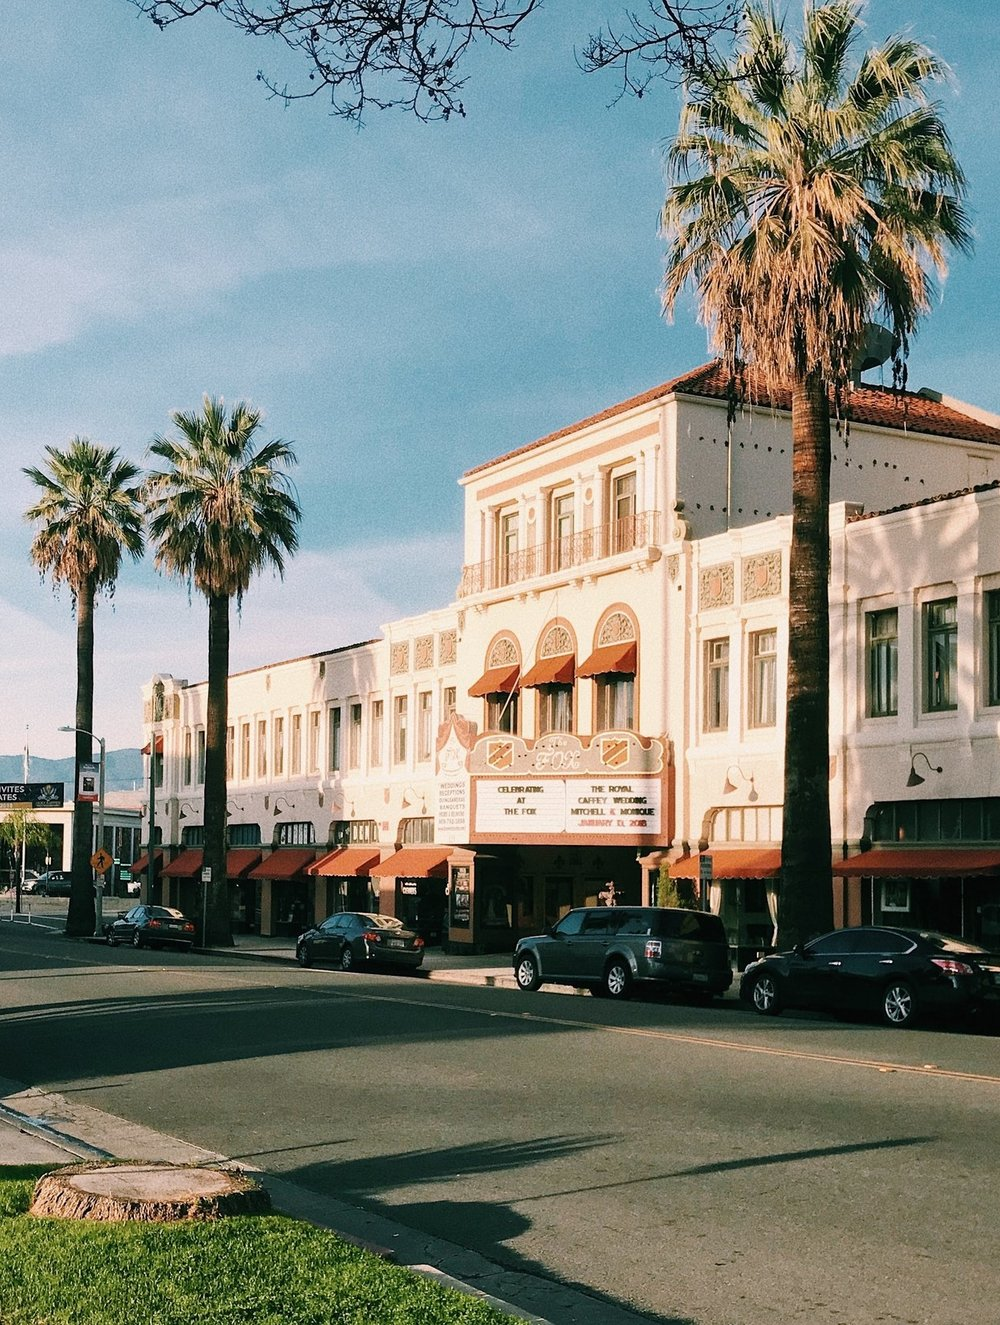 Towards a More Equitable and Just Community - There are two Redlands. Over the past 50 years, Redlands has experienced a deepening economic divide. The divide is strikingly visible and widely talked about. The economic disparity between North and South Redlands is unacceptable.